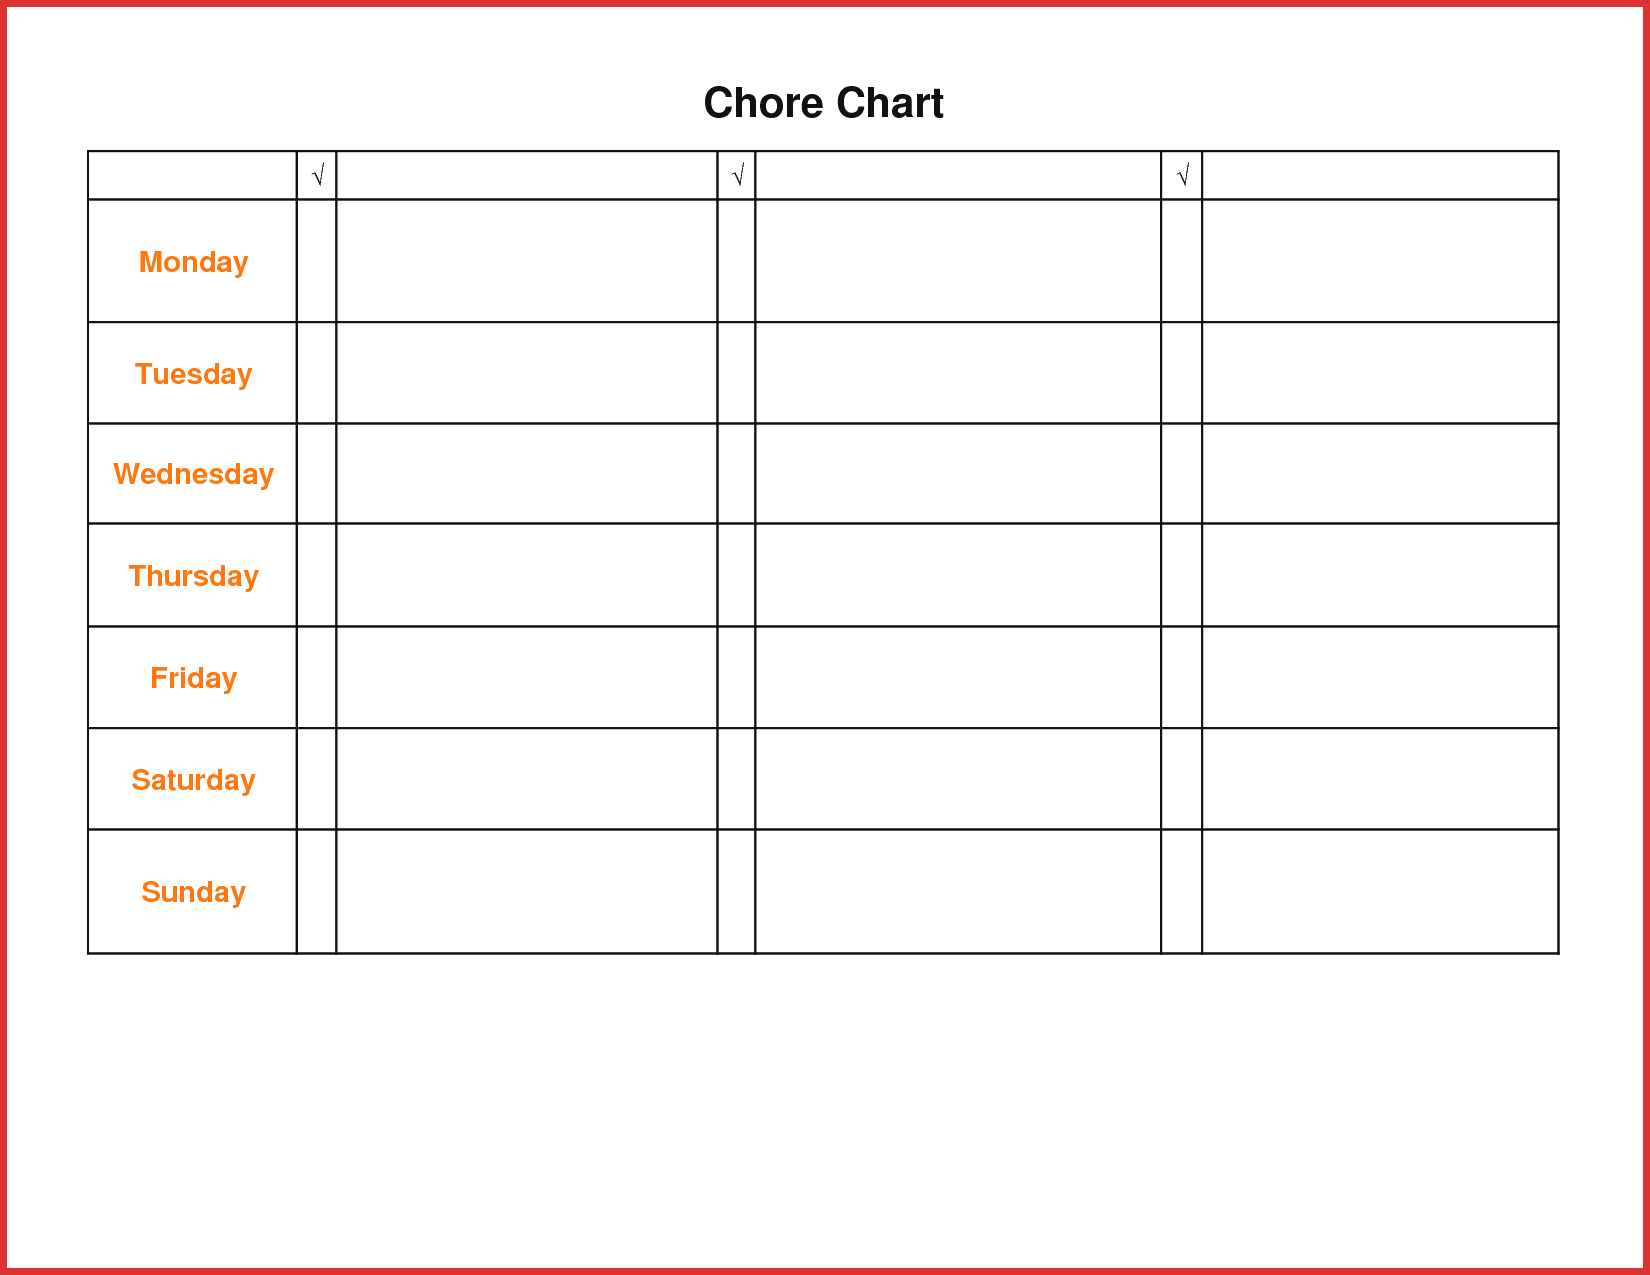 Teenager Chore Chart - Kaza.psstech.co - Free Printable Chore List For Teenager